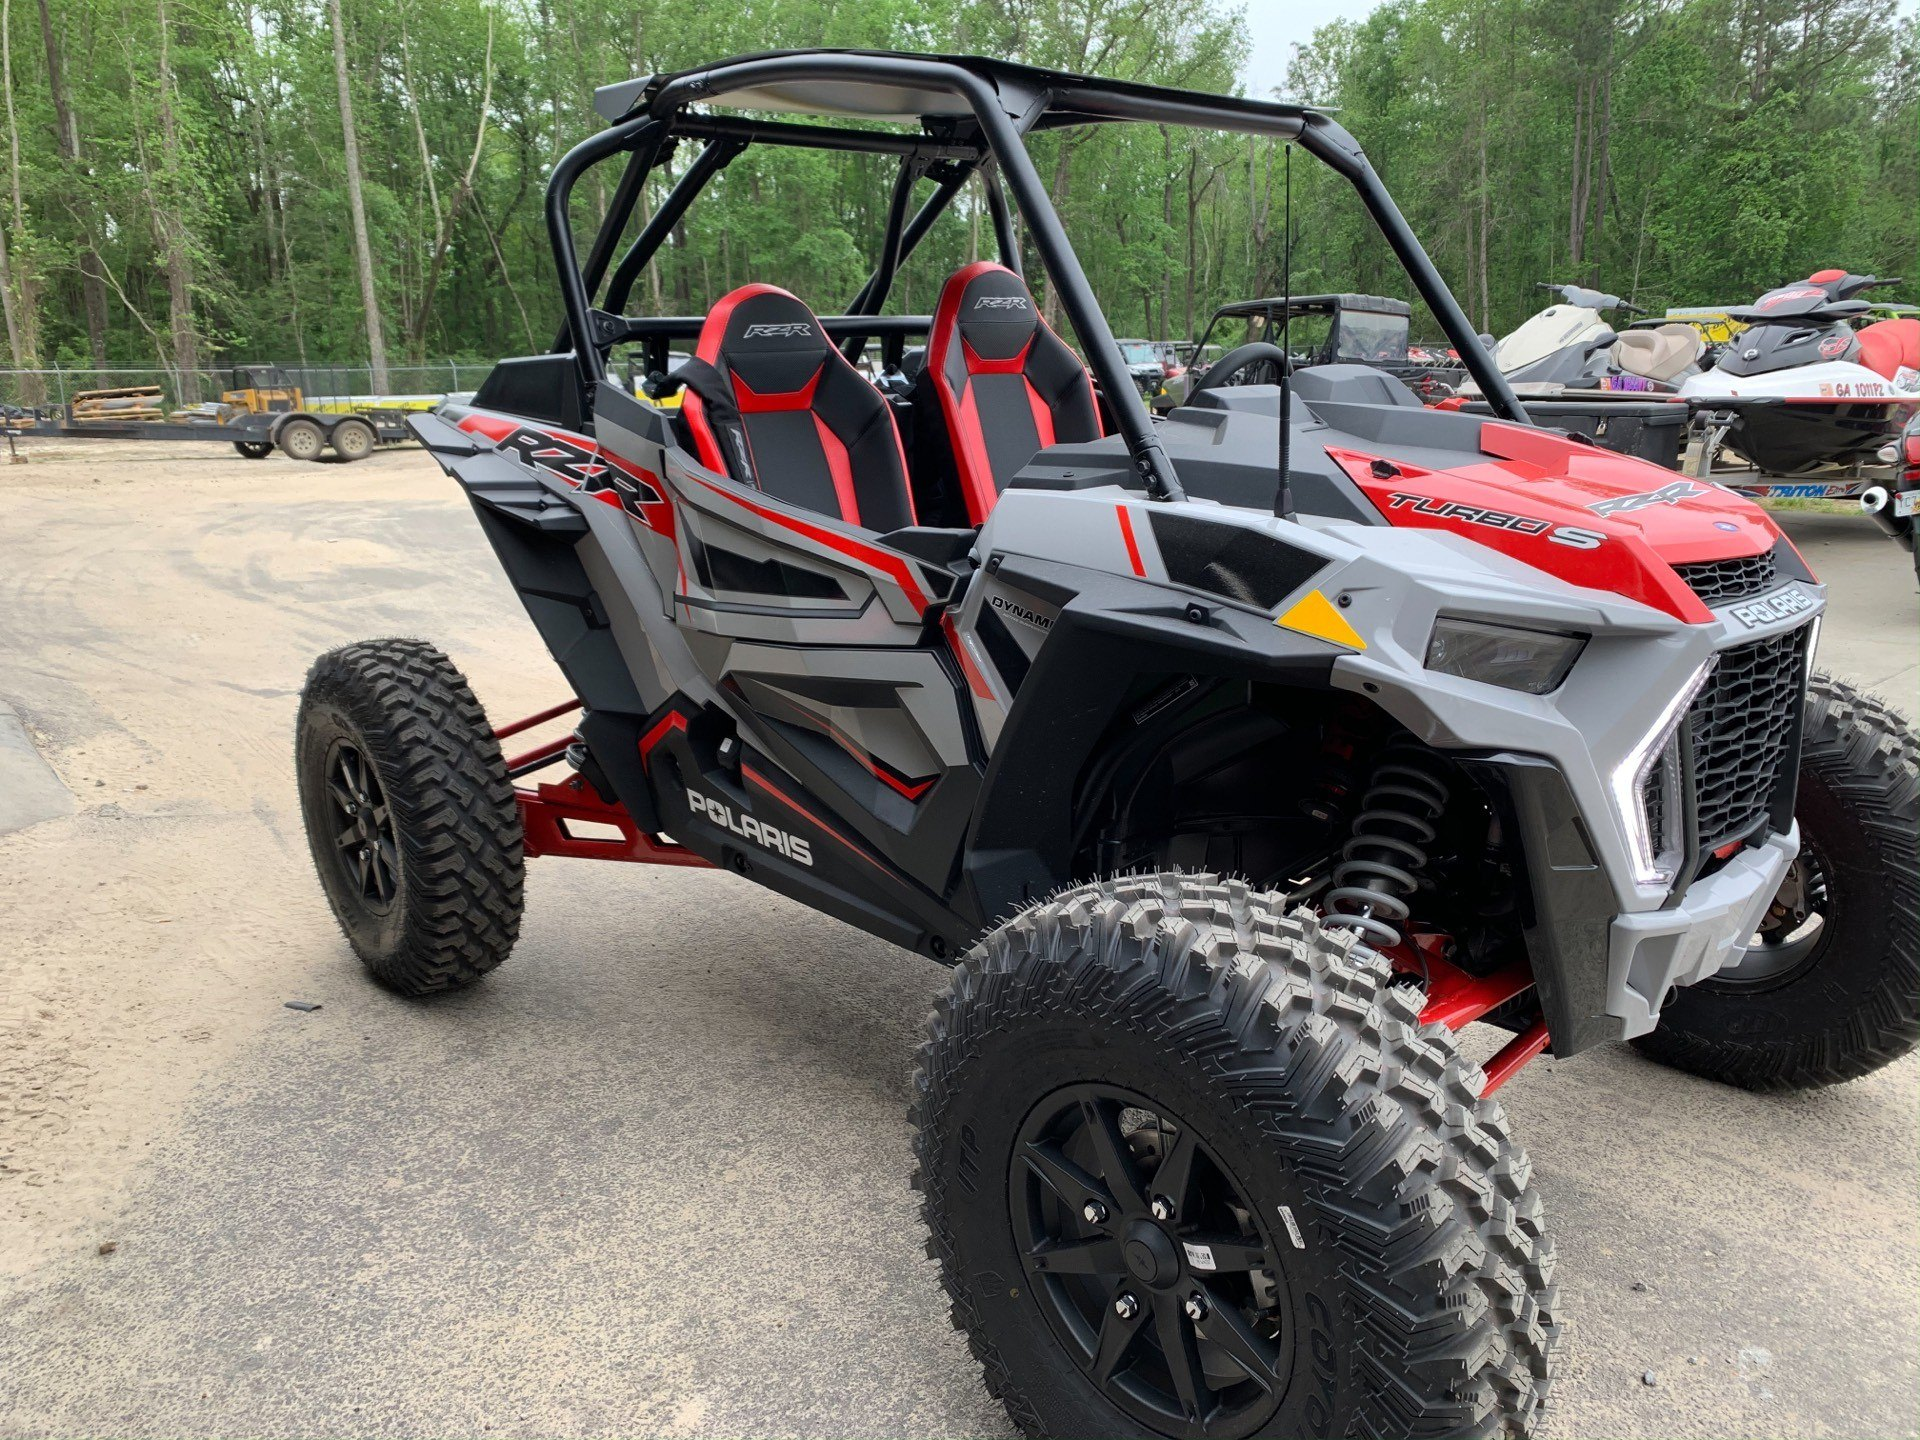 2020 Polaris RZR XP Turbo S in Statesboro, Georgia - Photo 3